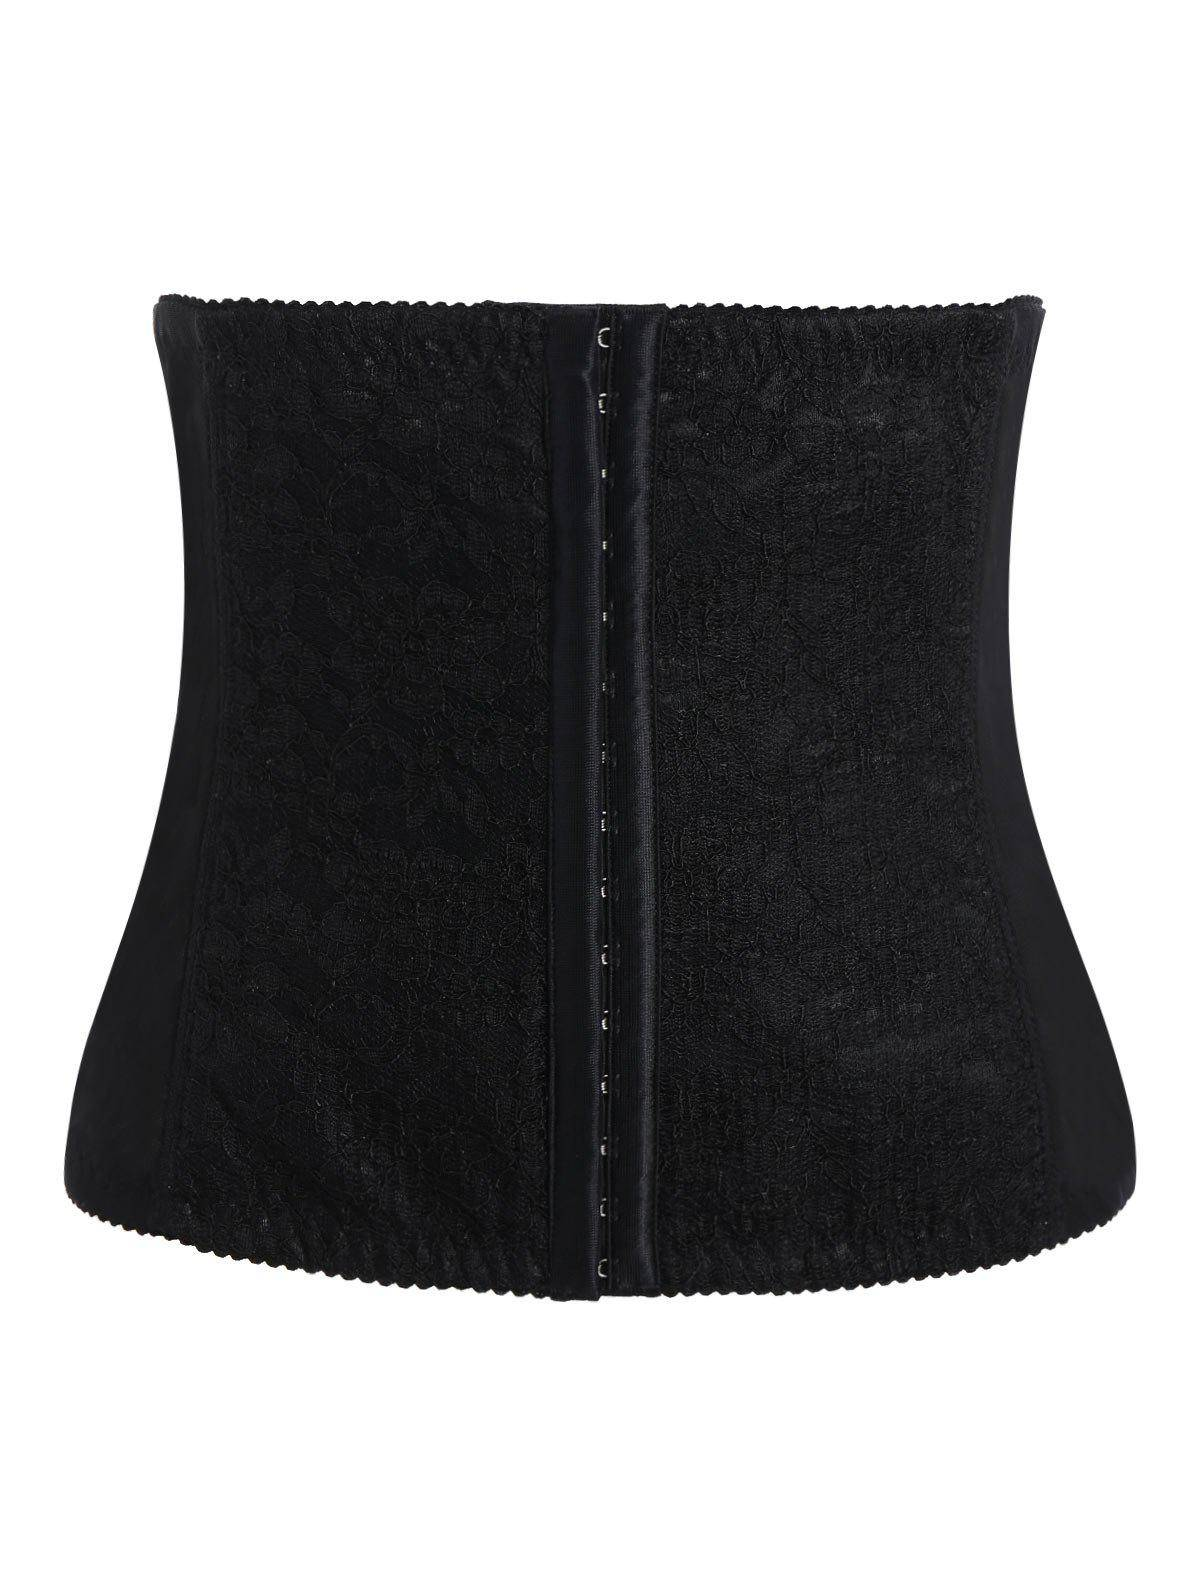 rosegal Strapless Lace Panel Steel Boned Plus Size Corset